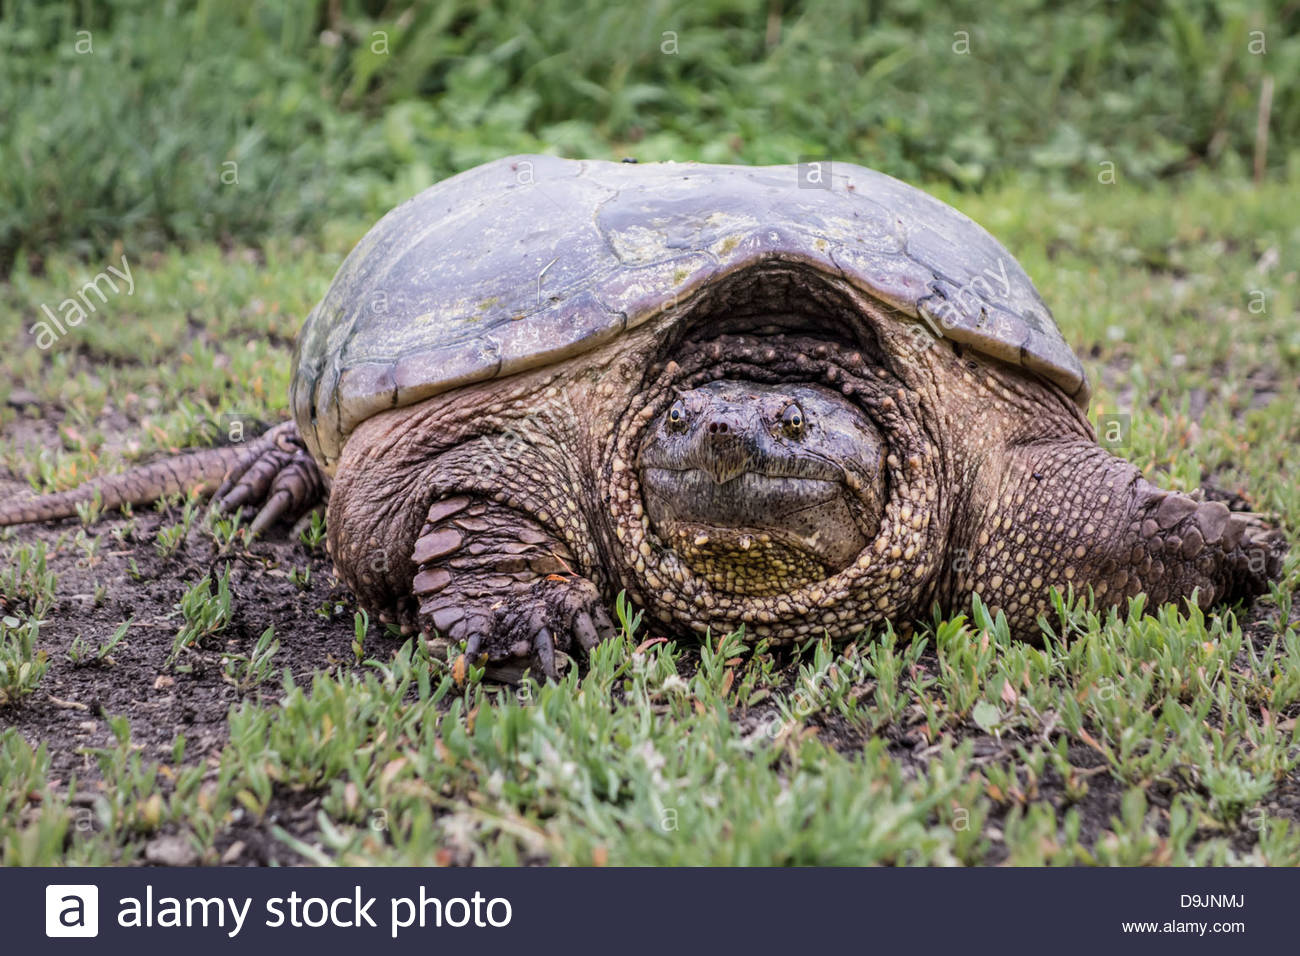 Common Snapping Turtle Chelydra serpentina in Rouge National Urban Park an urban wilderness in Toronto Ontario Canada. Stock Photo